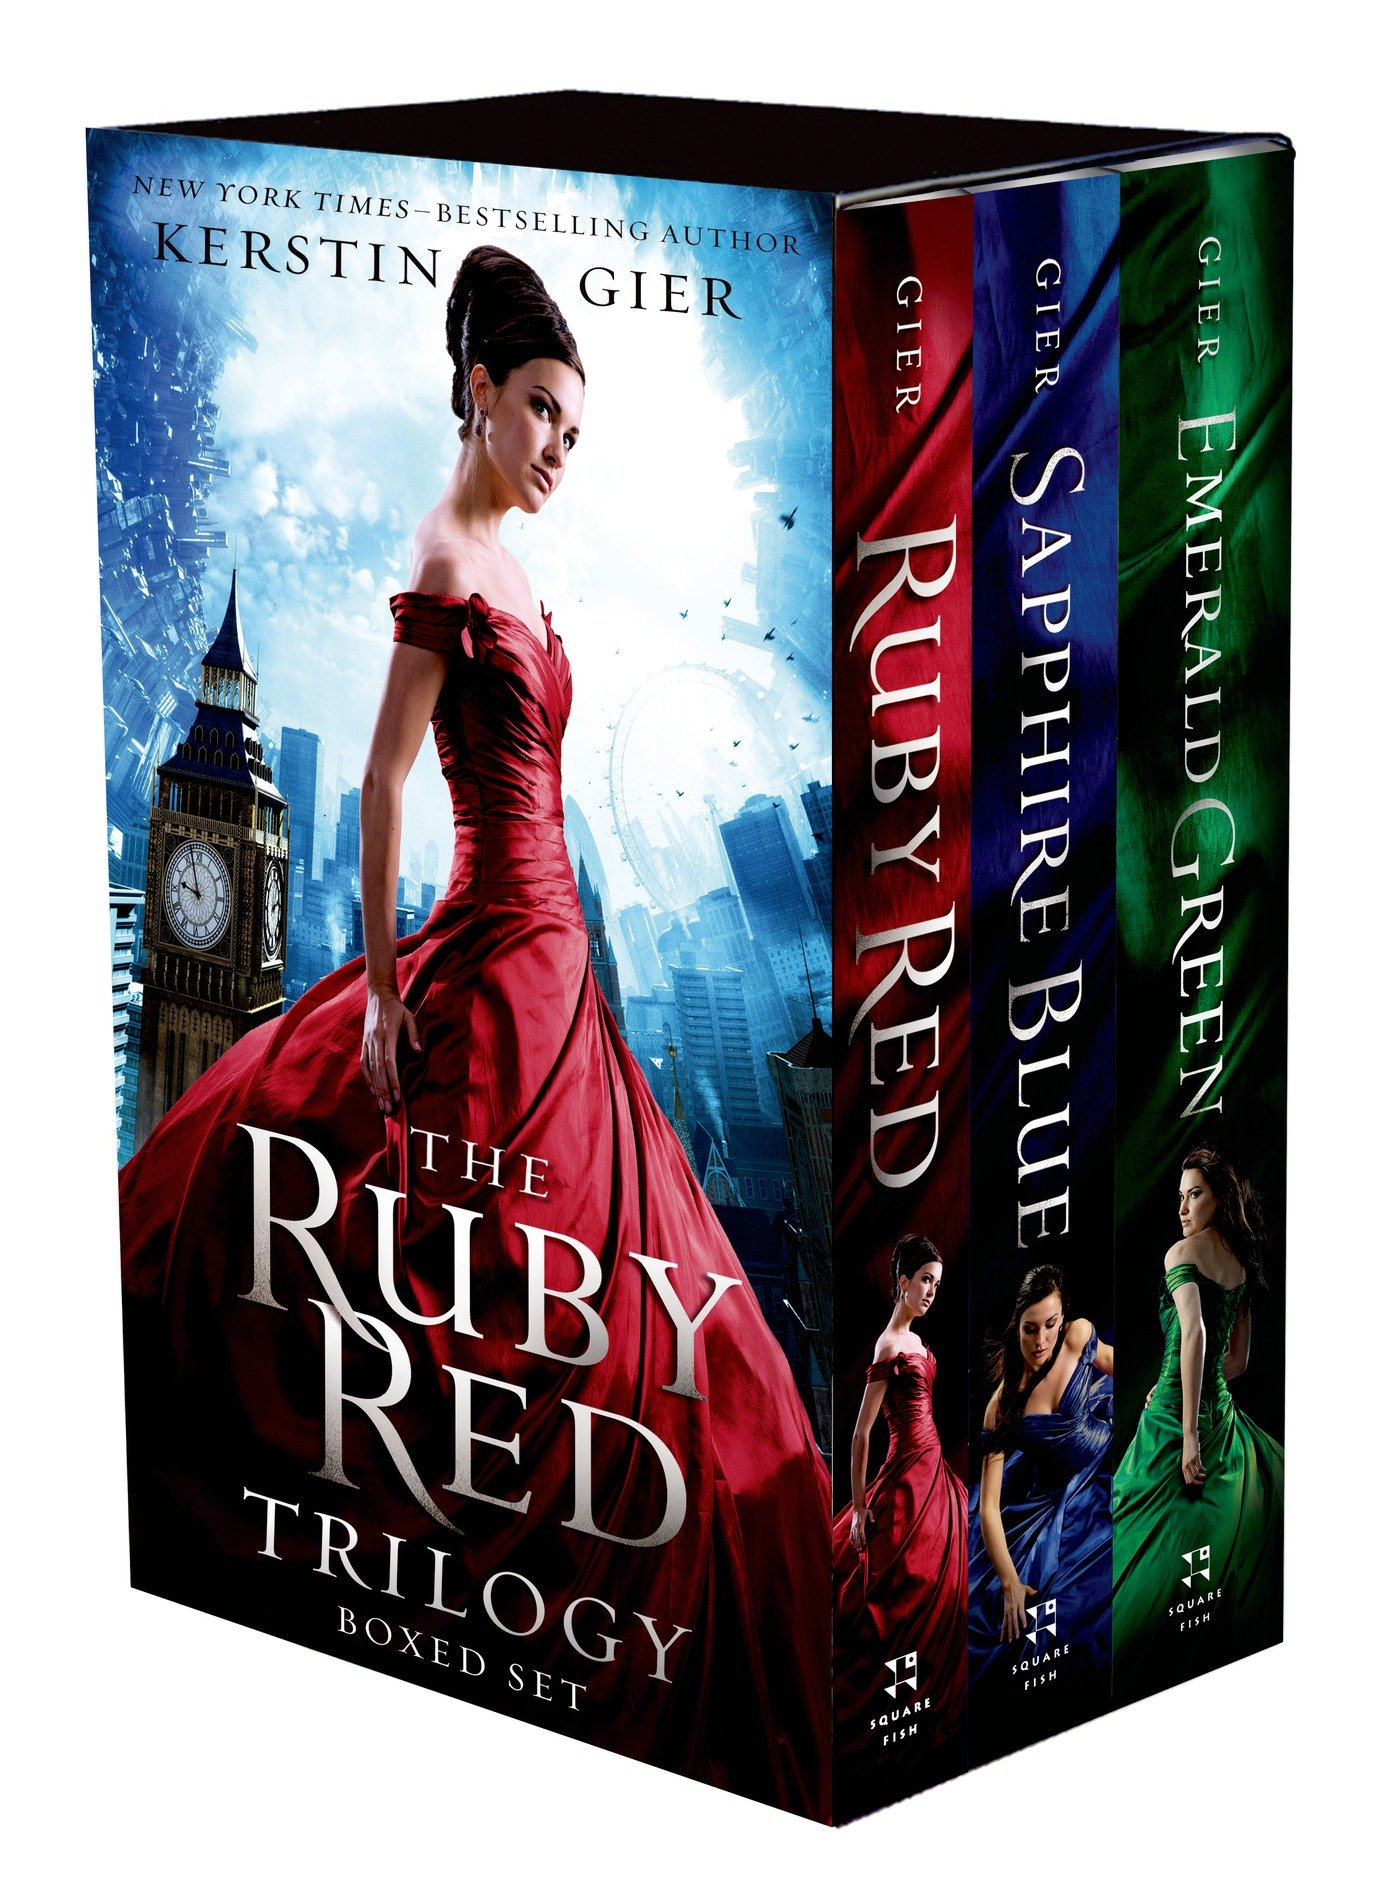 Ruby Red Trilogy Movie The Ruby Red Trilogy Boxed Set